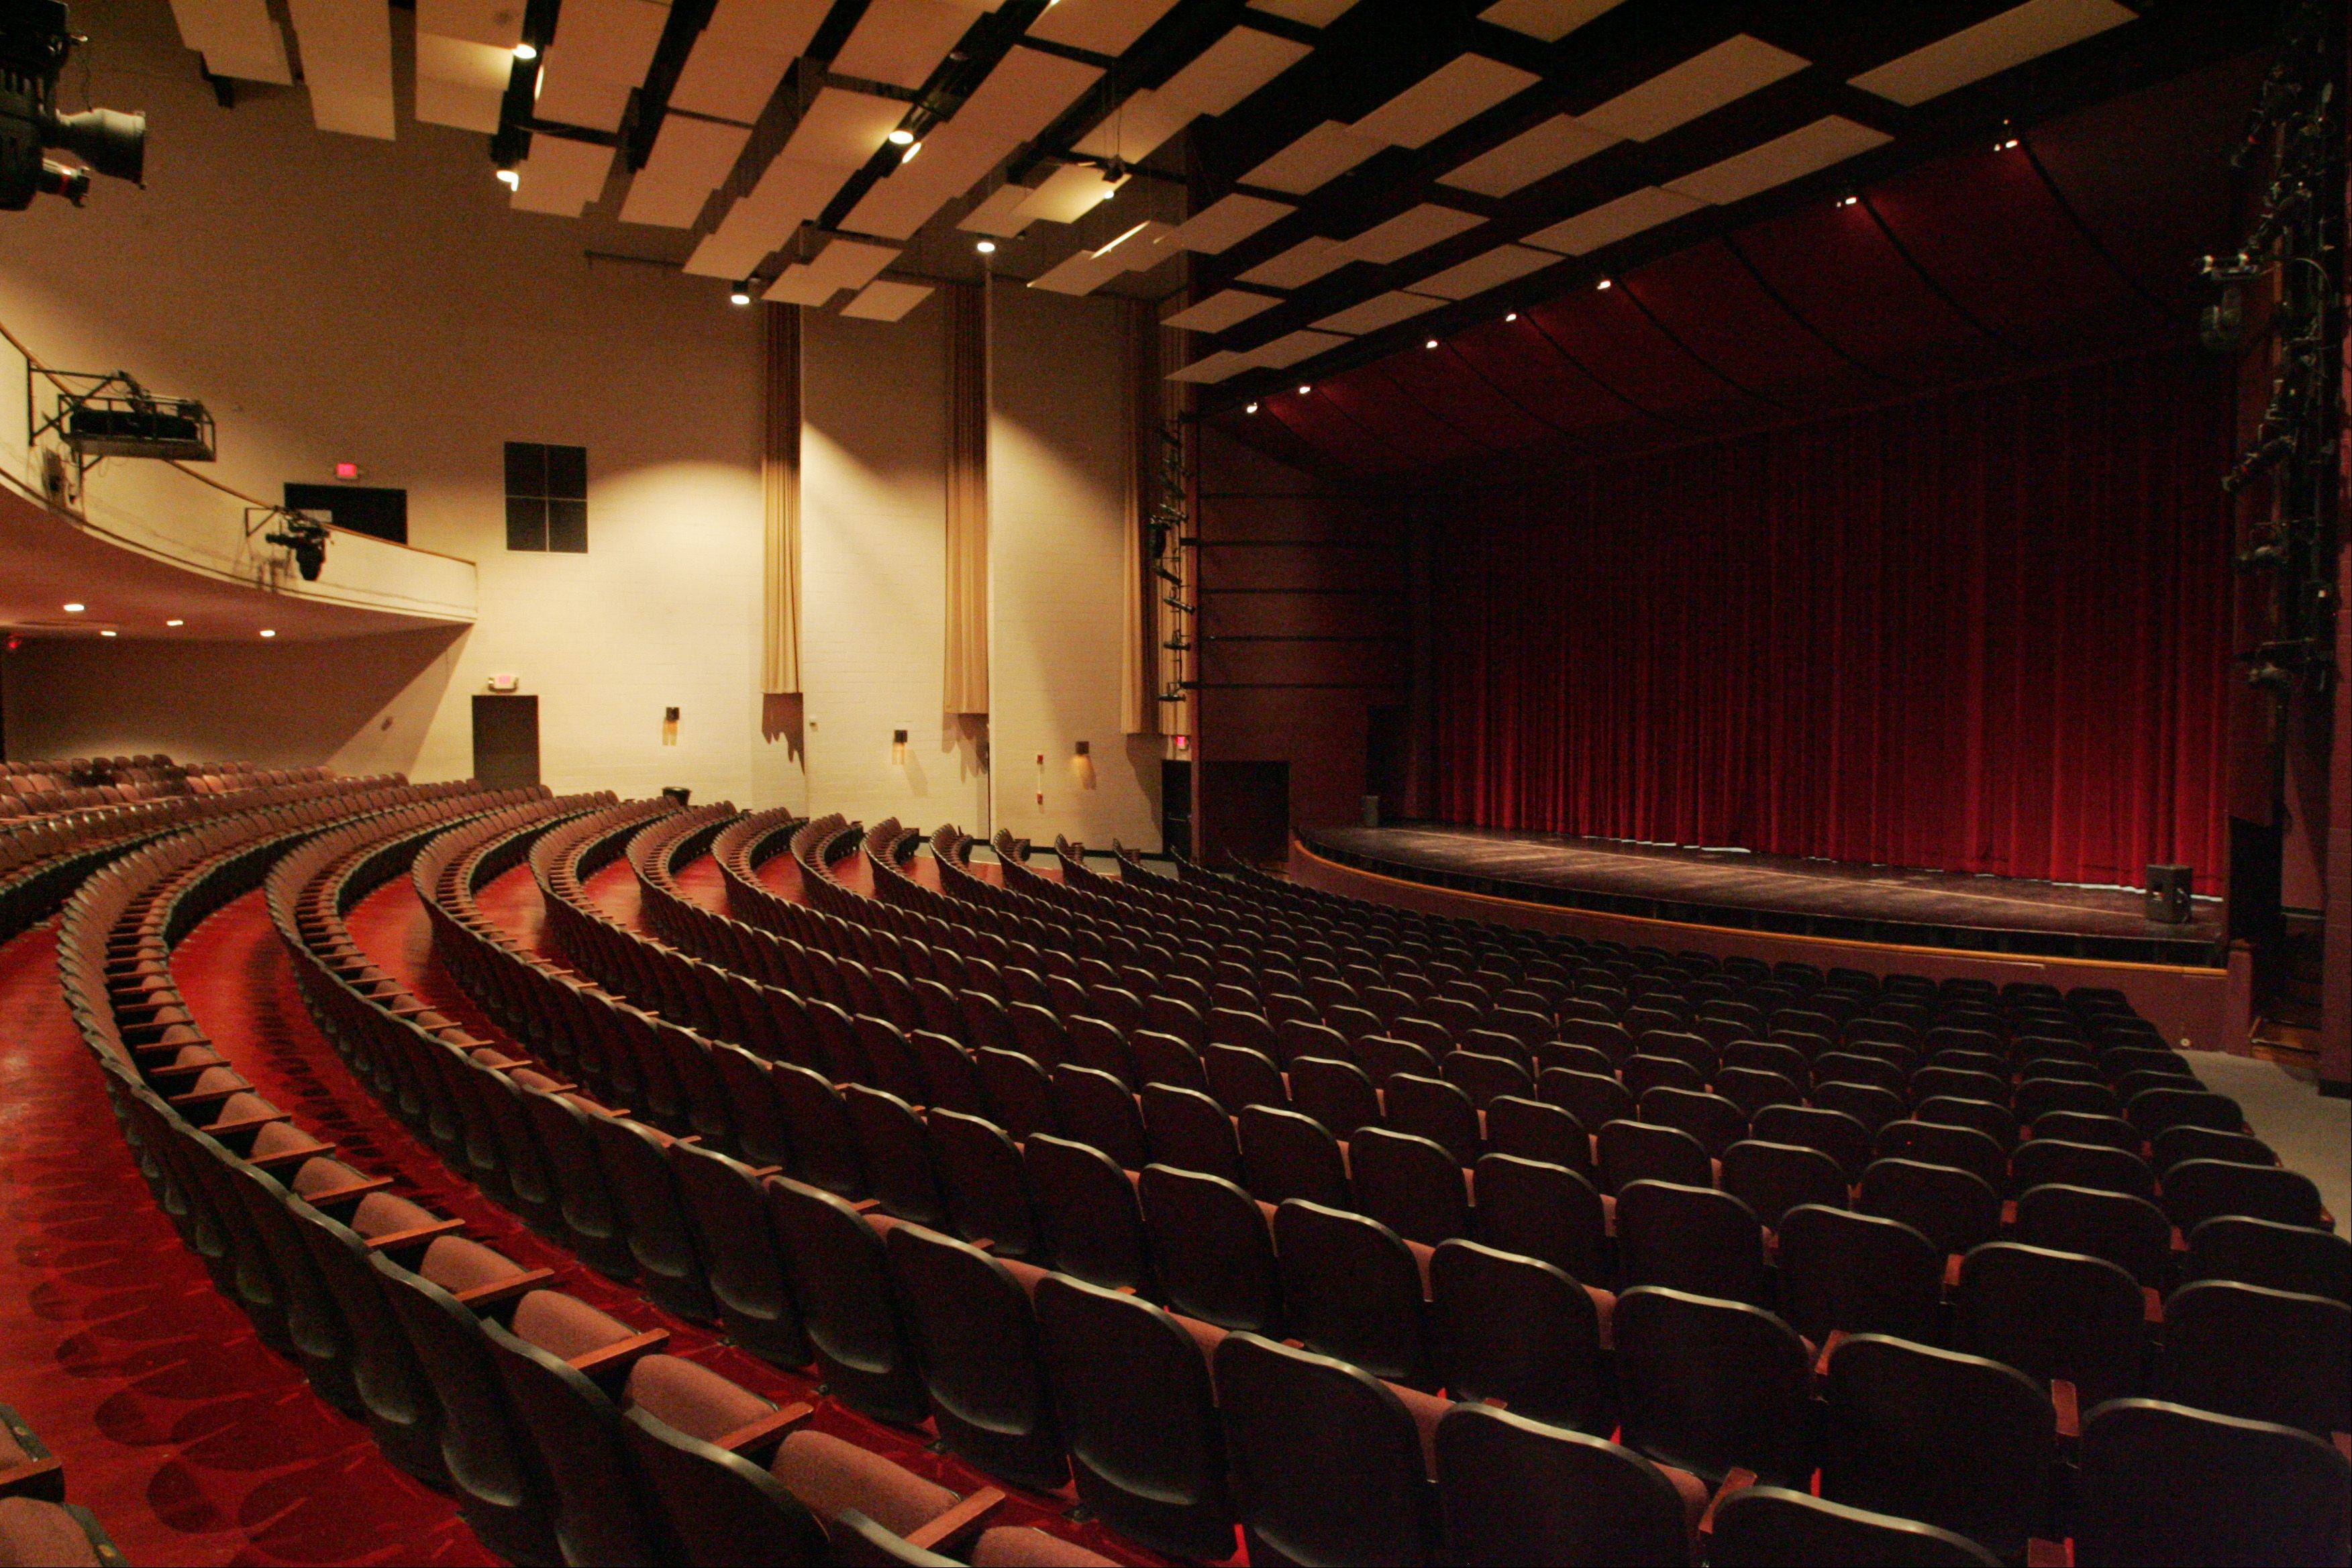 The auditorium at the Hemmens Cultural Center in Elgin is too small to attract big-name acts. And officials say the acoustics are subpar and the building itself has outlived its usefulness. The city may partner with the Grand Victoria Casino to build an entertainment complex at the casino. The casino will pay for a viability study.